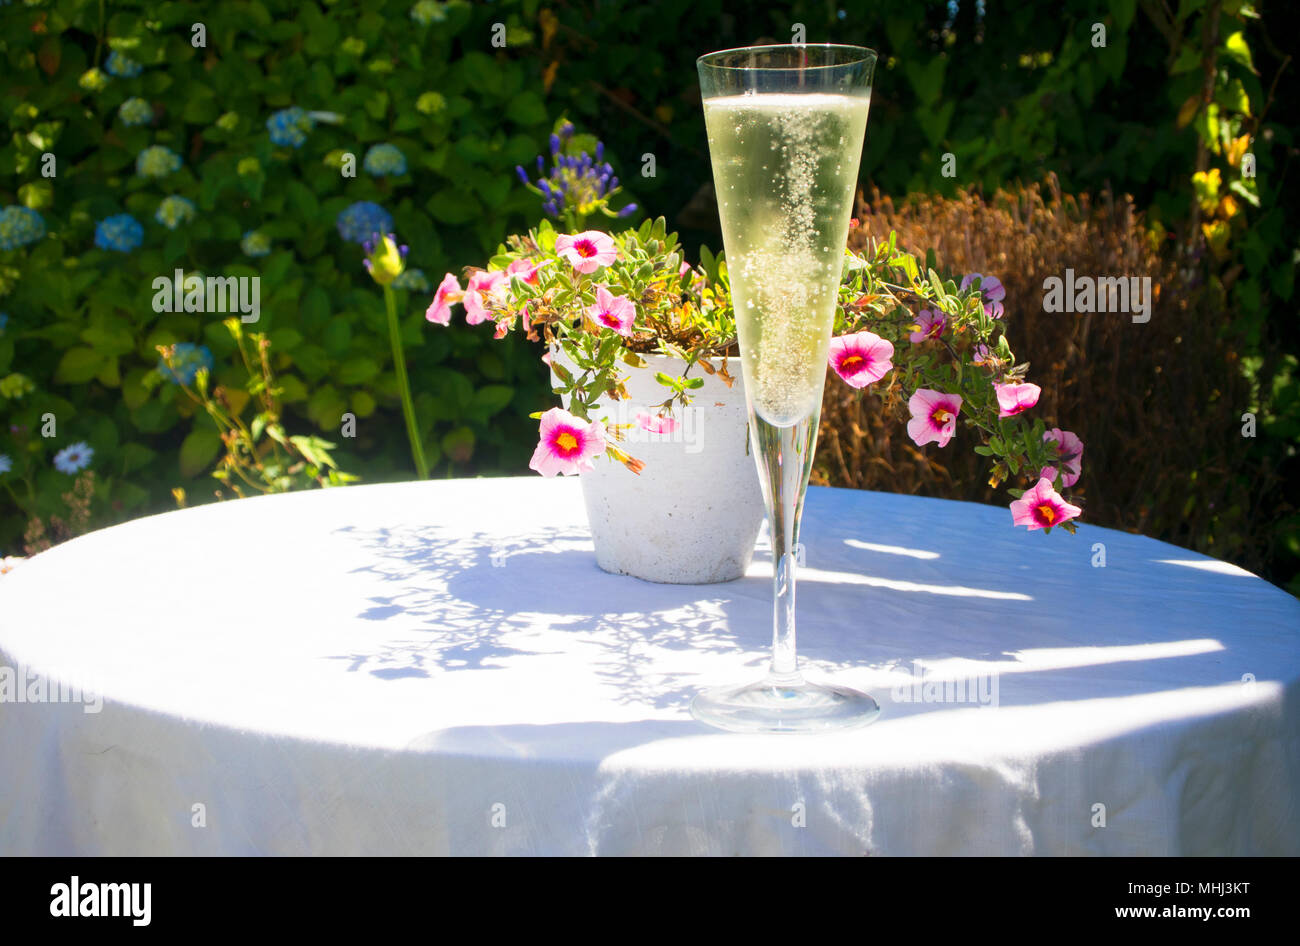 A glass of sparkling wine in a summer garden - John Gollop - Stock Image